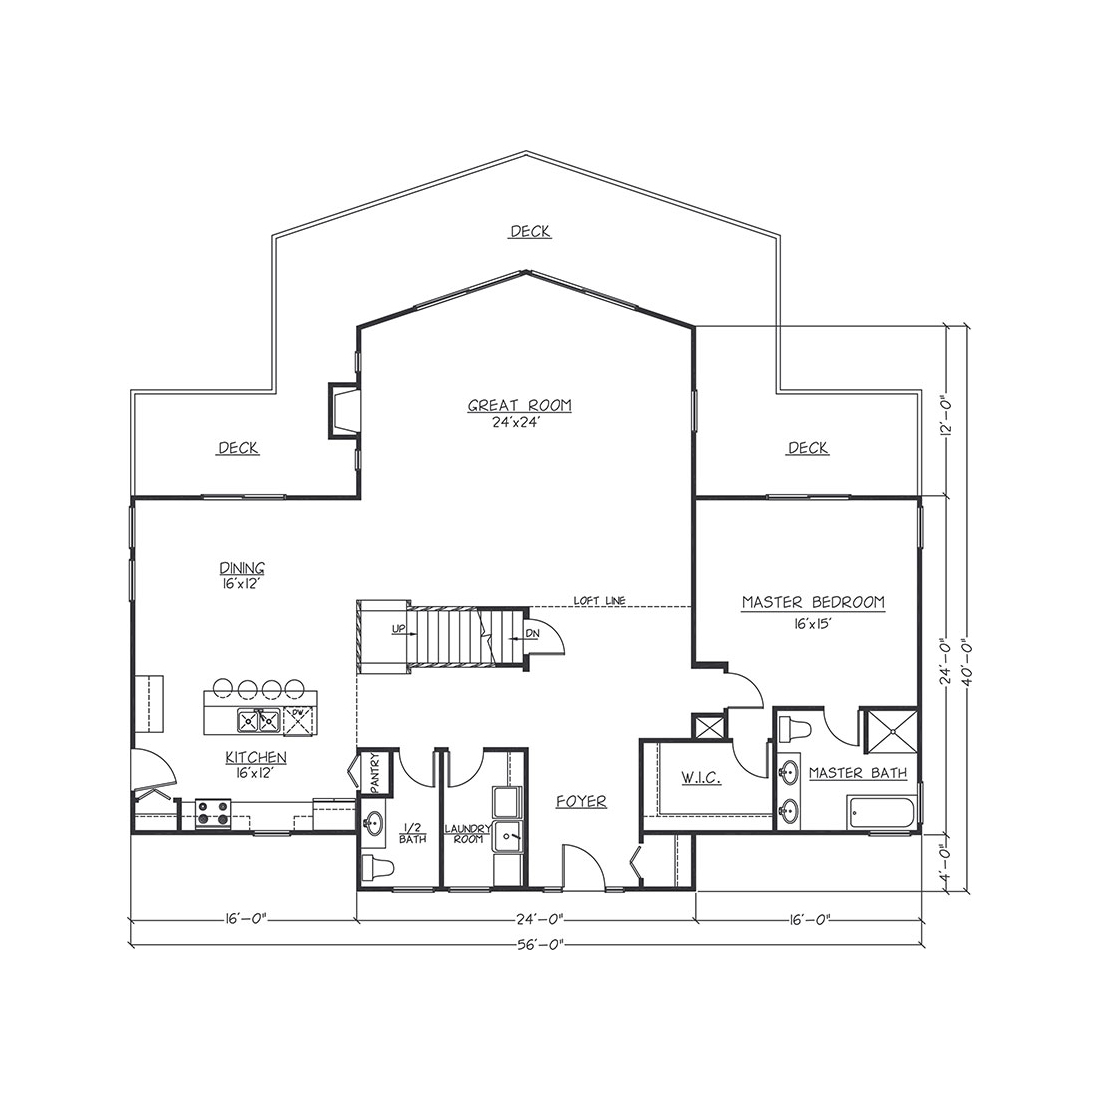 #6 MAIN FLOOR 24x36 with 2 WingsTotal Sq. Ft.= 2688